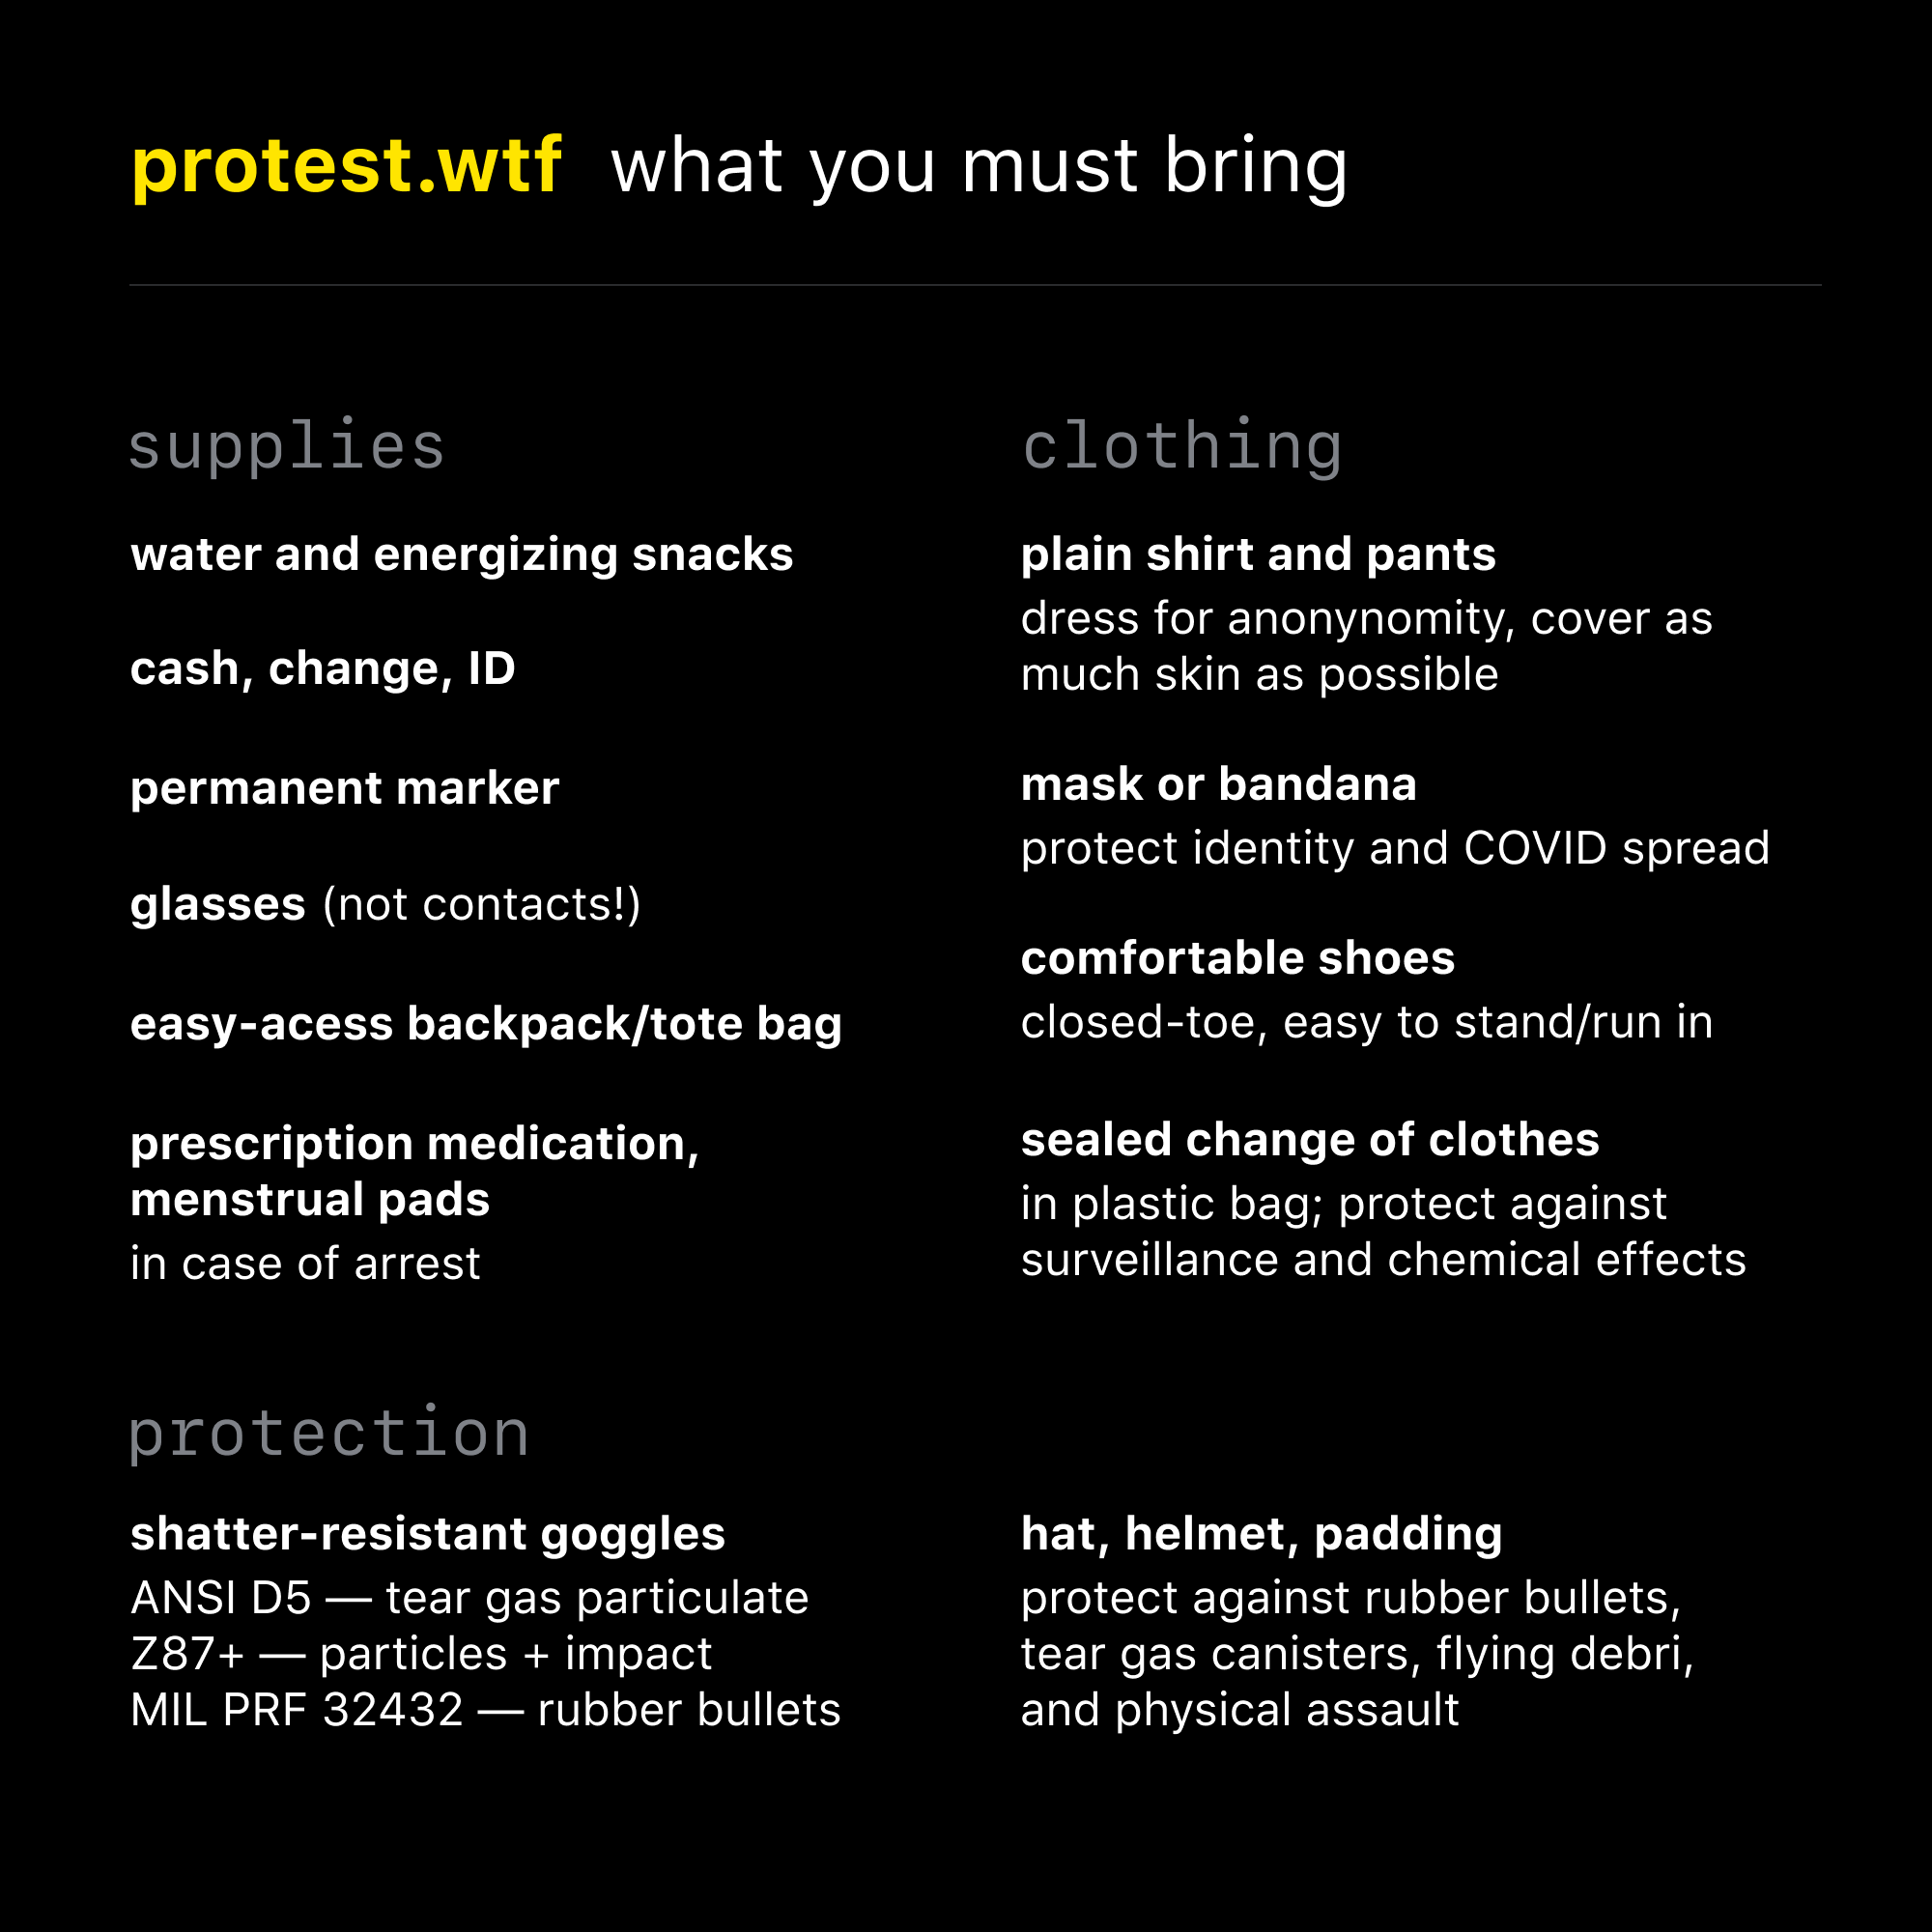 What to bring to a protest